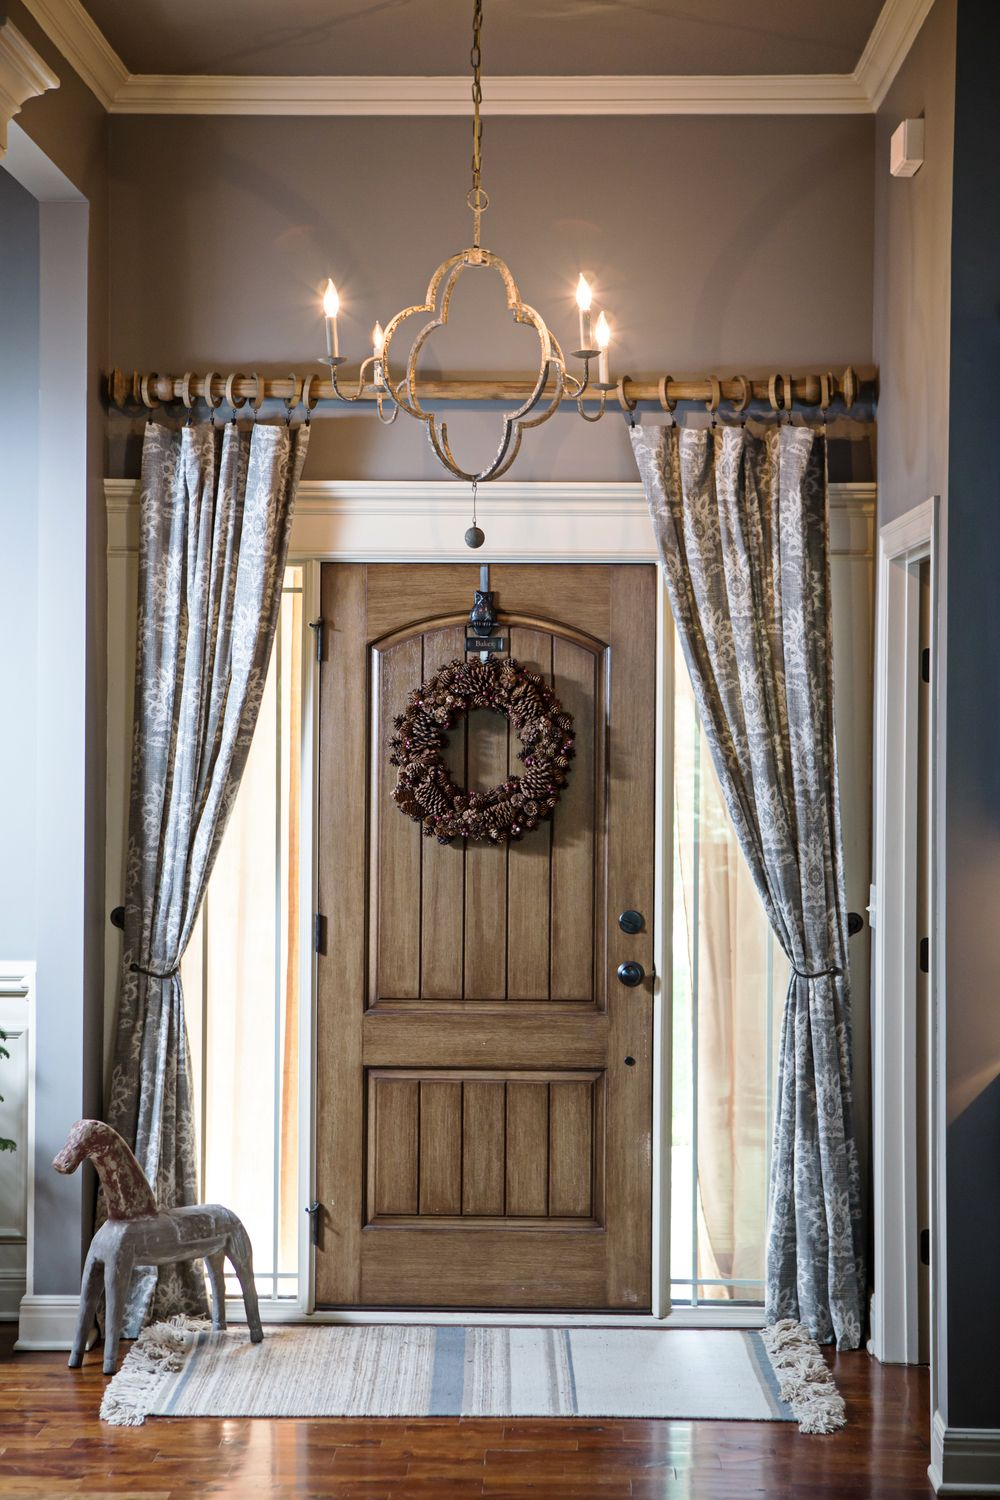 Foyer Door Curtains : Curtains over the front door foyer add privacy and style